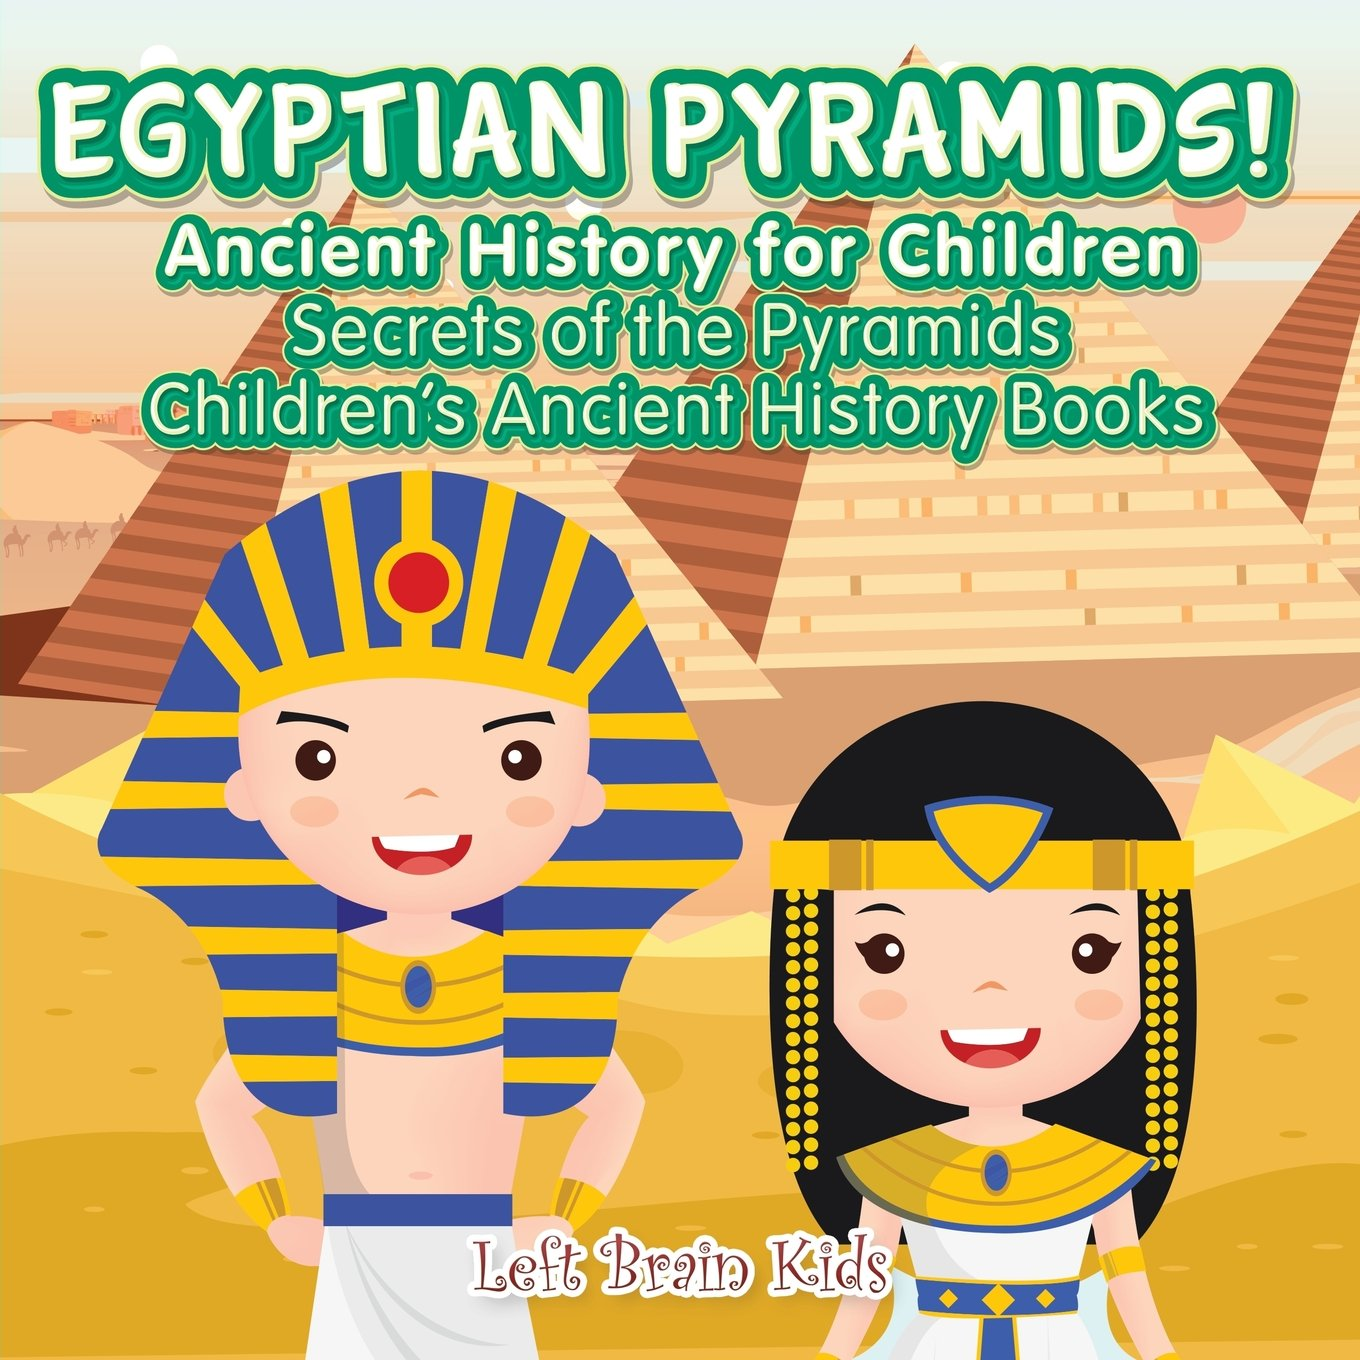 Download Egyptian Pyramids! Ancient History for Children: Secrets of the Pyramids - Children's Ancient History Books PDF